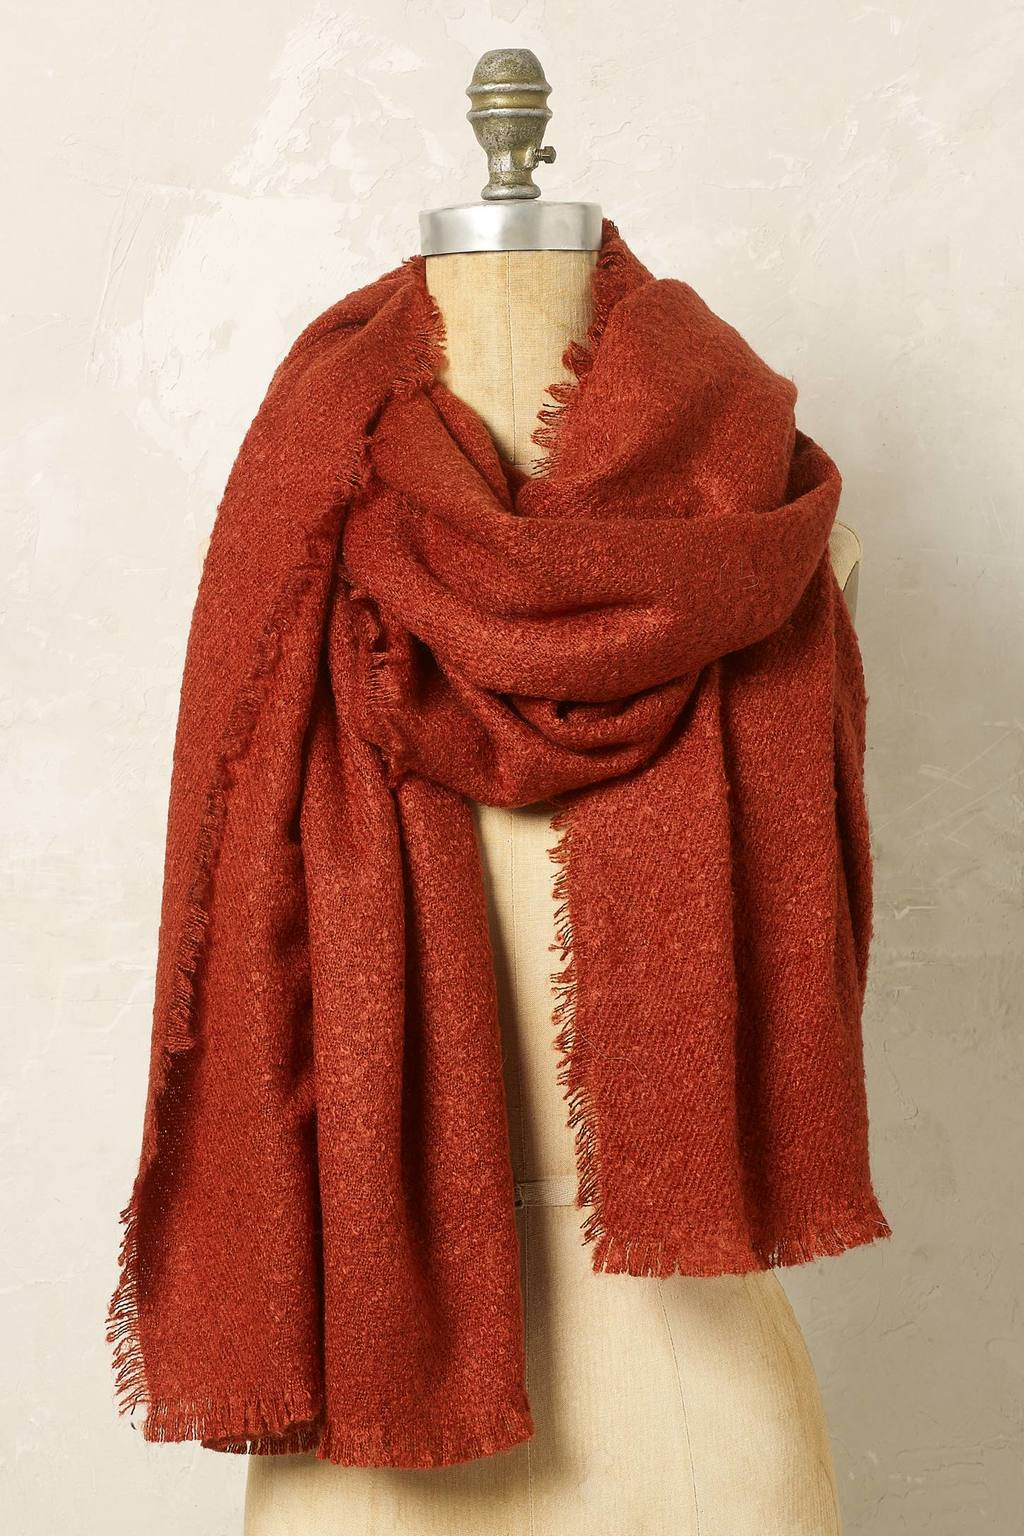 Lea Boucle Scarf - predominant colour: tan; occasions: casual; type of pattern: standard; style: regular; size: large; material: fabric; pattern: plain; season: a/w 2016; wardrobe: highlight